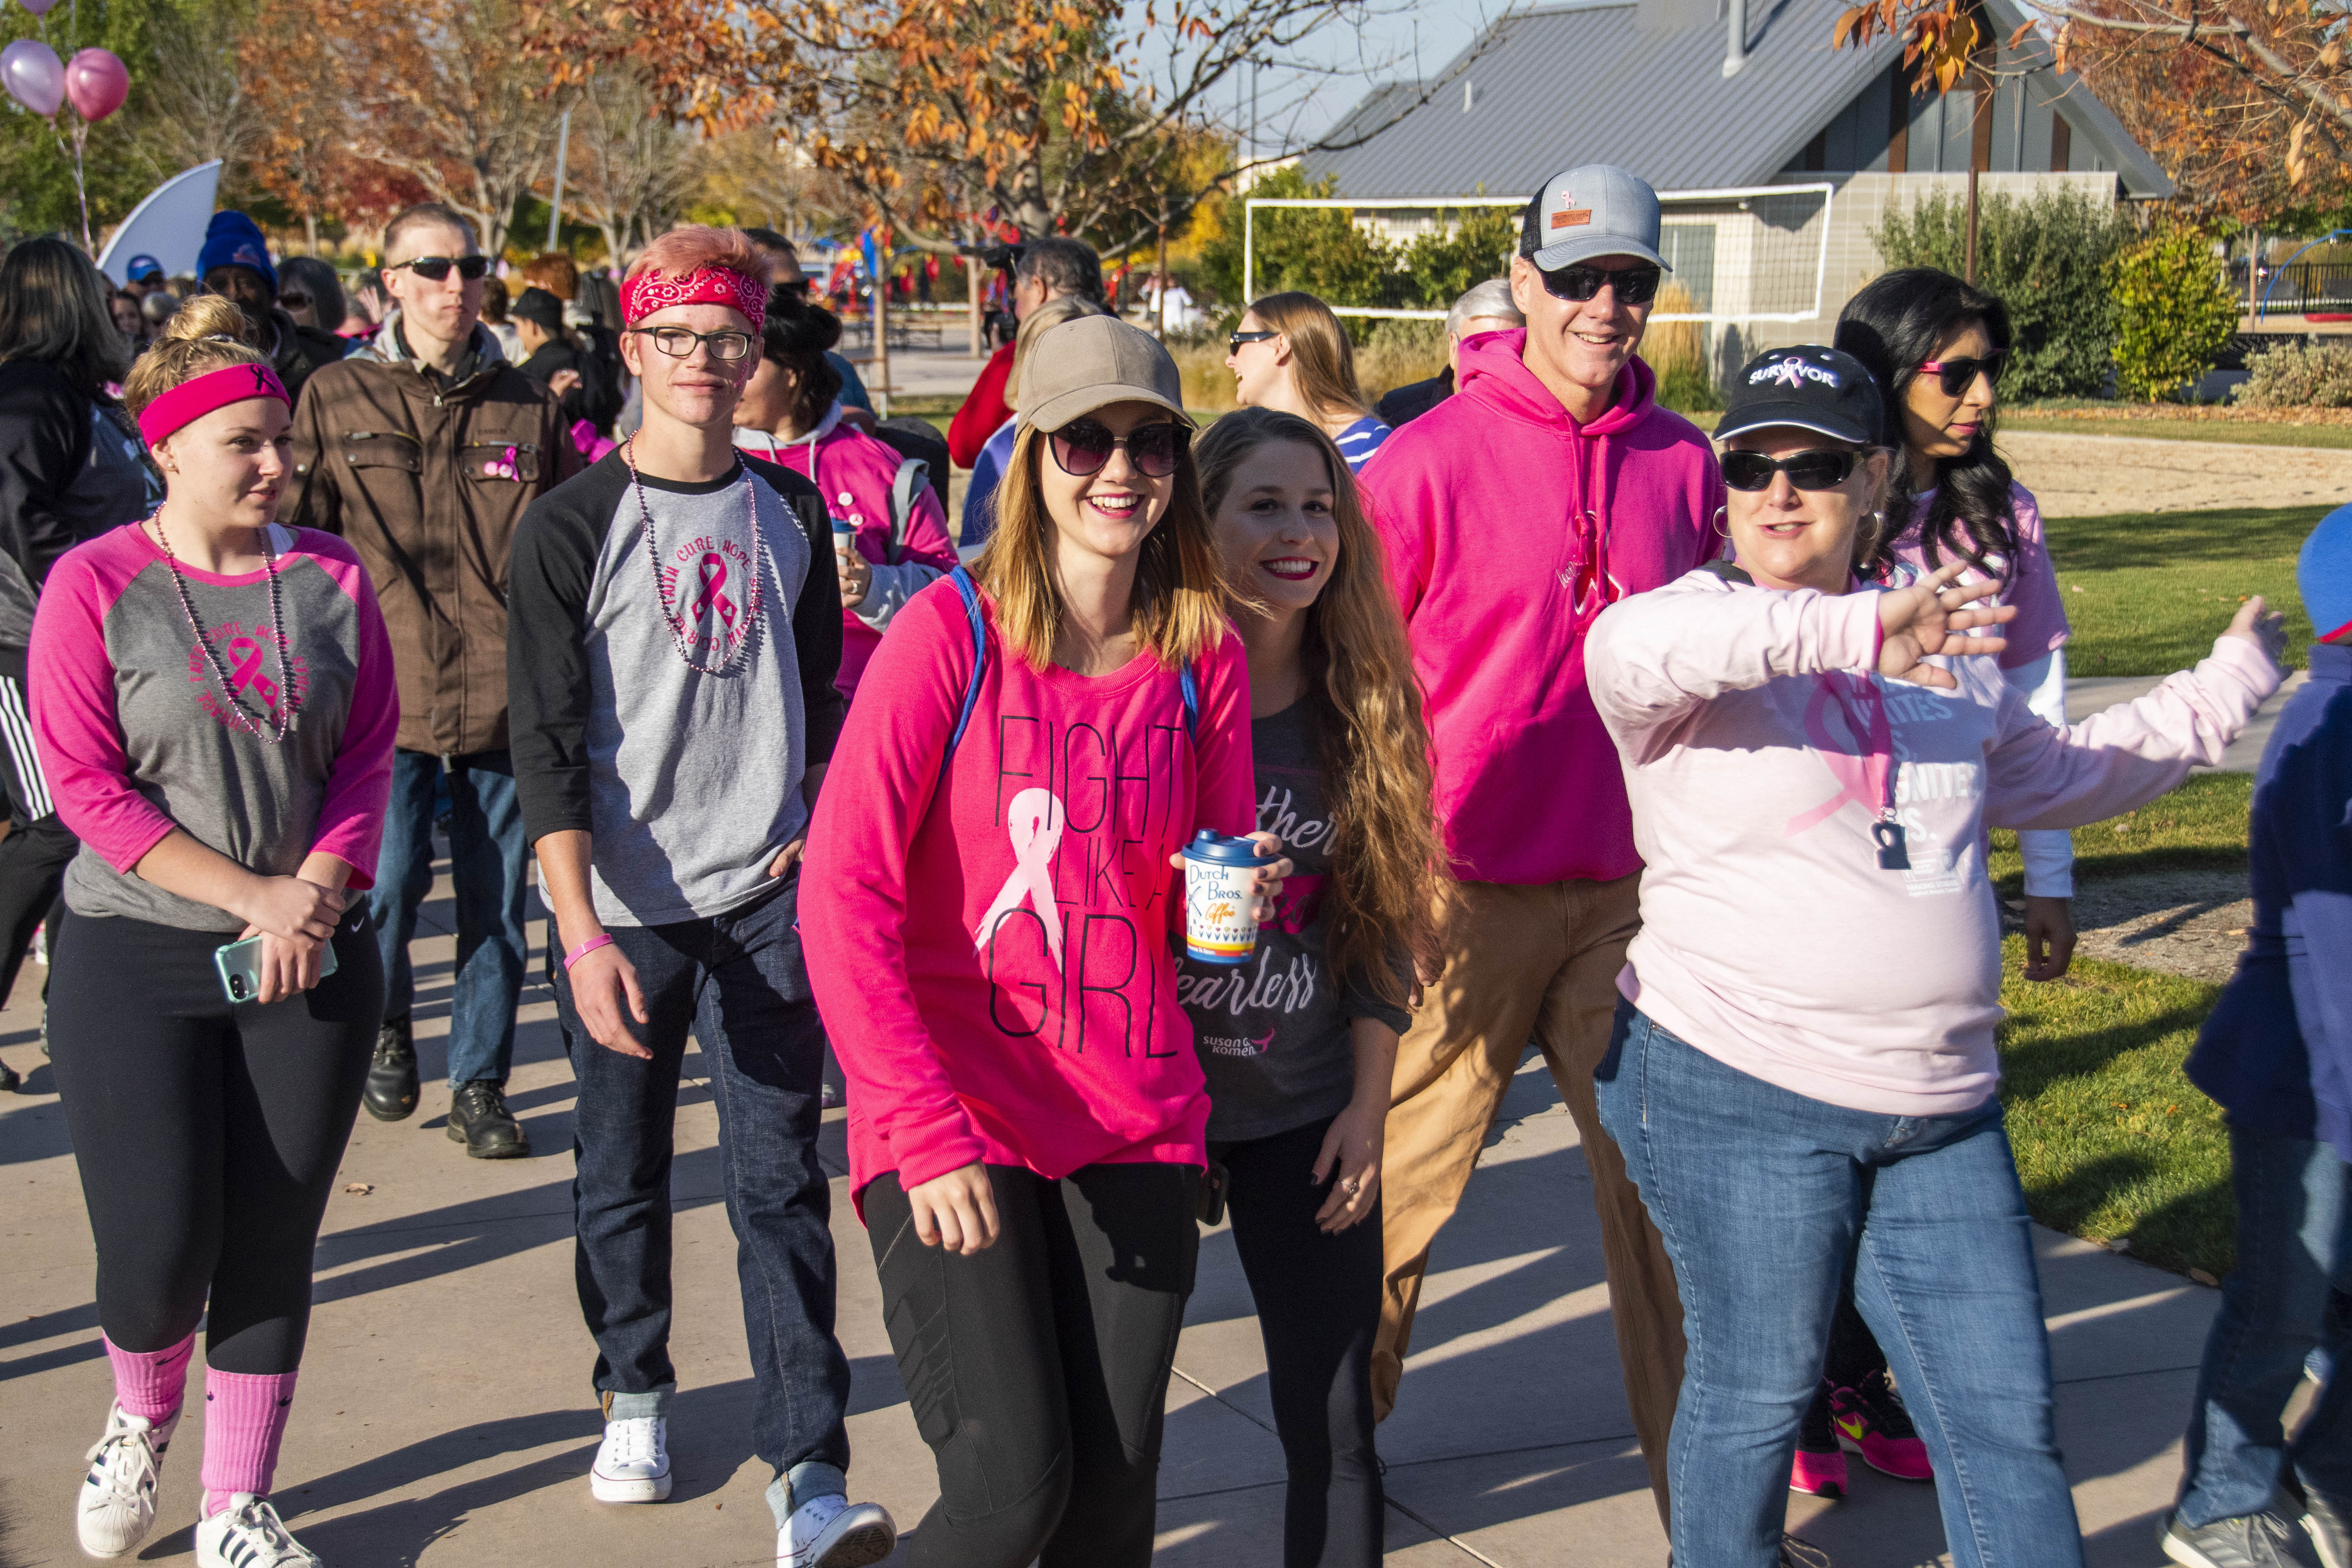 Making Strides of Treasure Valley filled Julius Kleiner Park Saturday in Meridian. The event is dedicated to the celebration of survivors of breast cancer as well as bringing awareness to the disease. Participants walked three times around the park and were allowed to finish anytime as the event was not a race.{ }